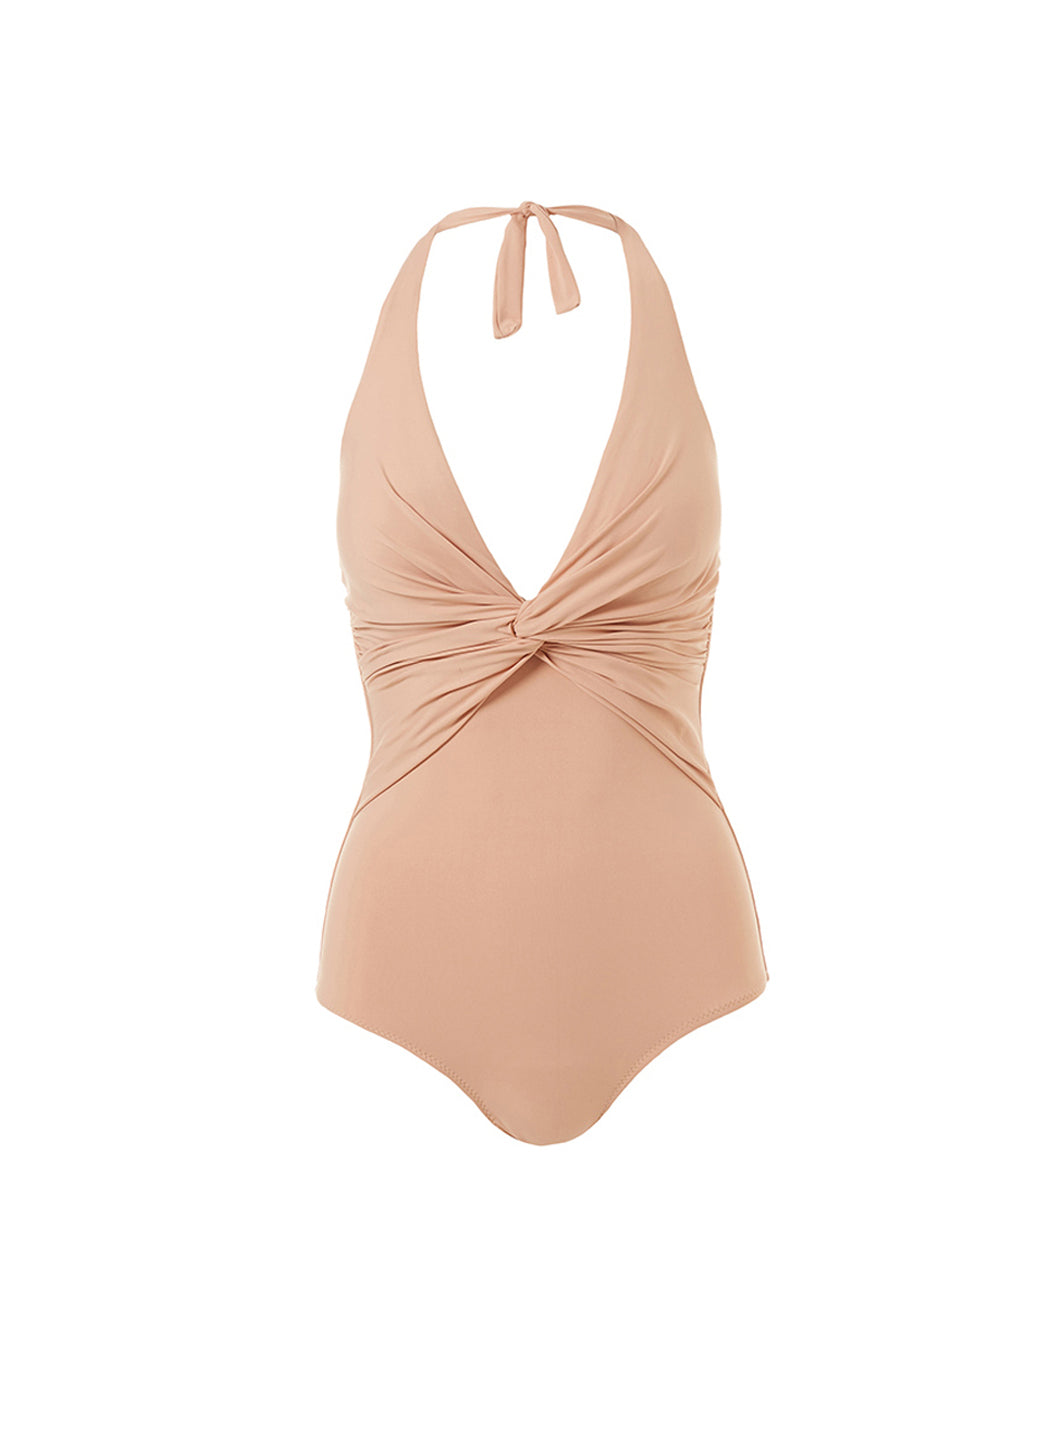 Zanzibar Tan Halterneck Ruched Knot Swimsuit - Melissa Odabash Brown Swimsuits